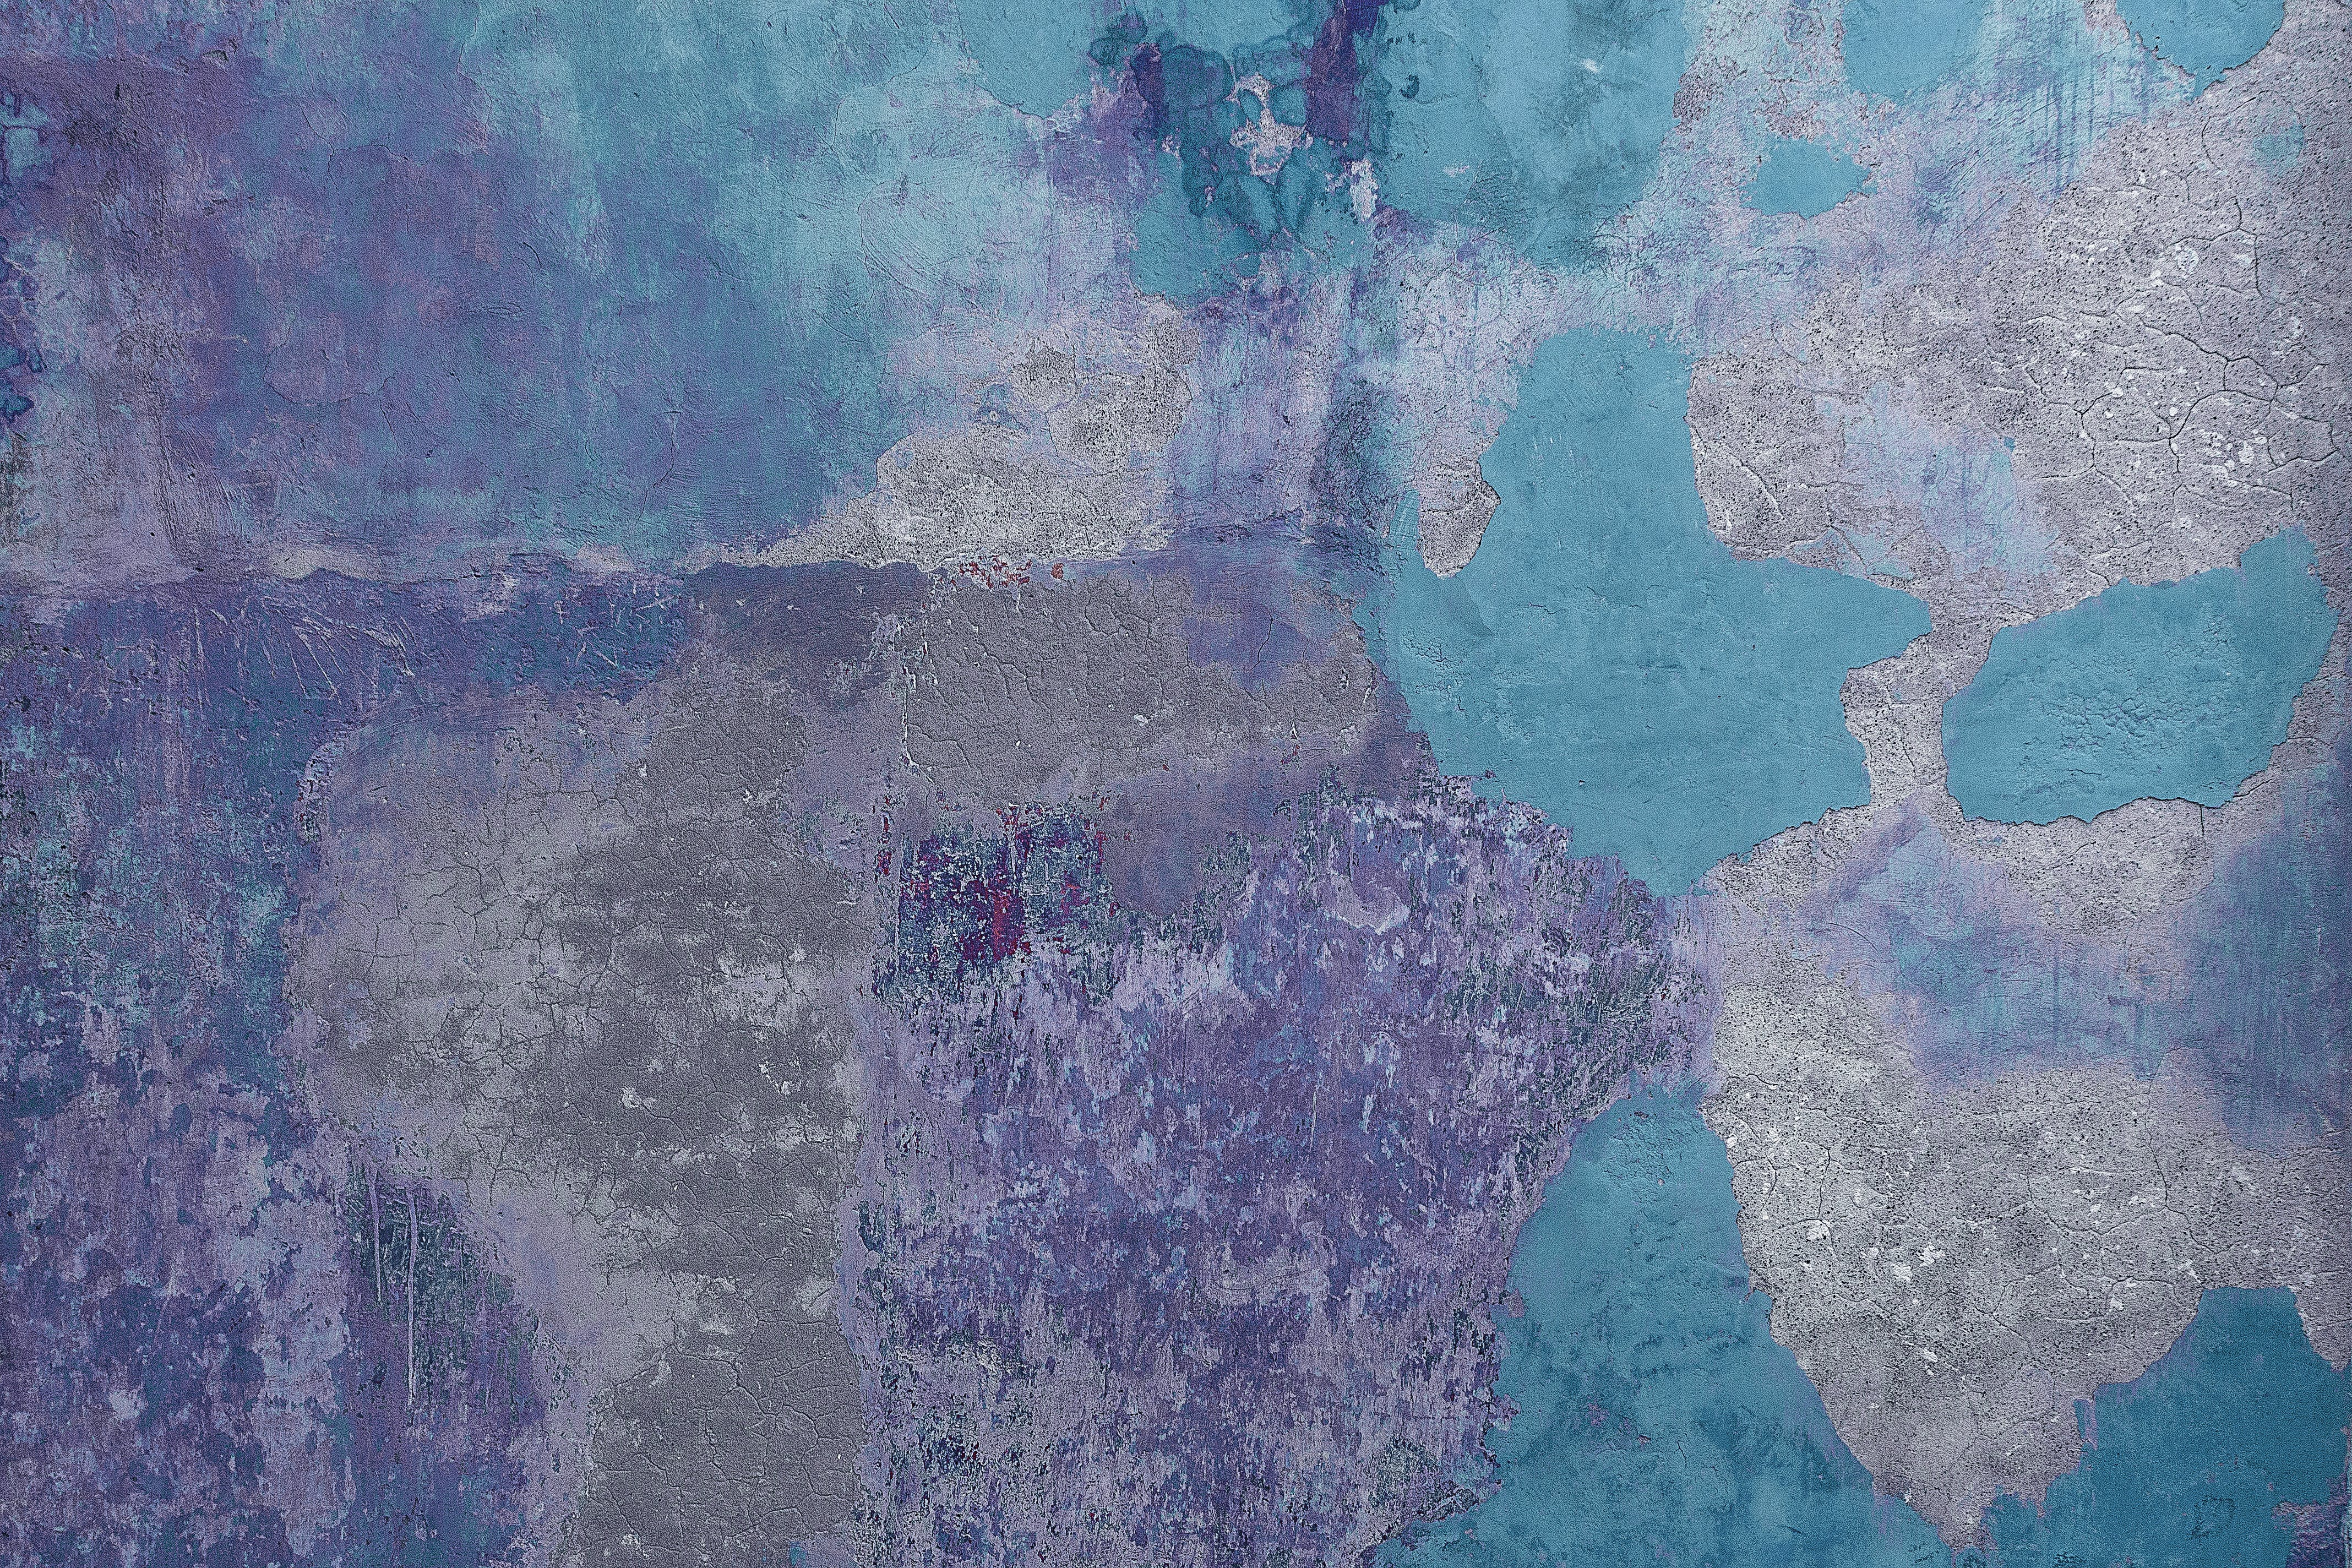 Free stock photo of abstract art, abstract photo, background image, blue paint